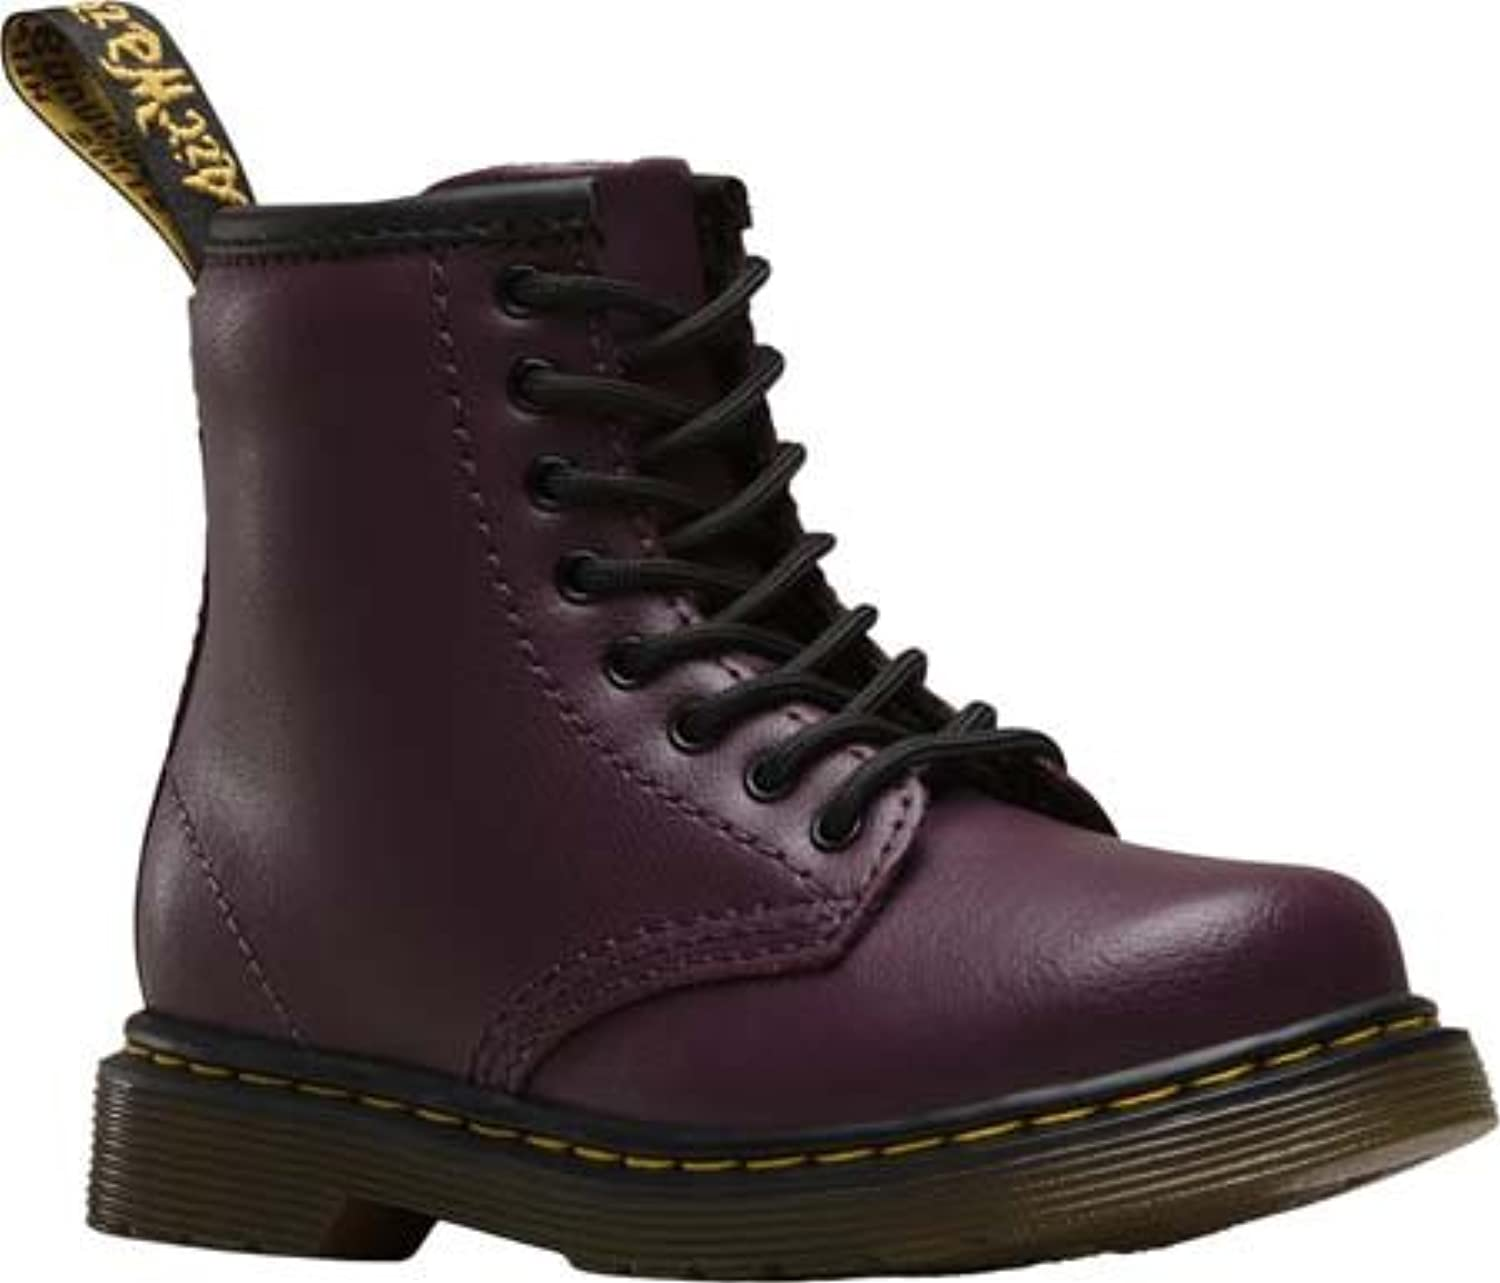 Dr.Martens Toddlers Brooklee 1460 8 Eyelet Zip Purple Leather Boots 6 UK